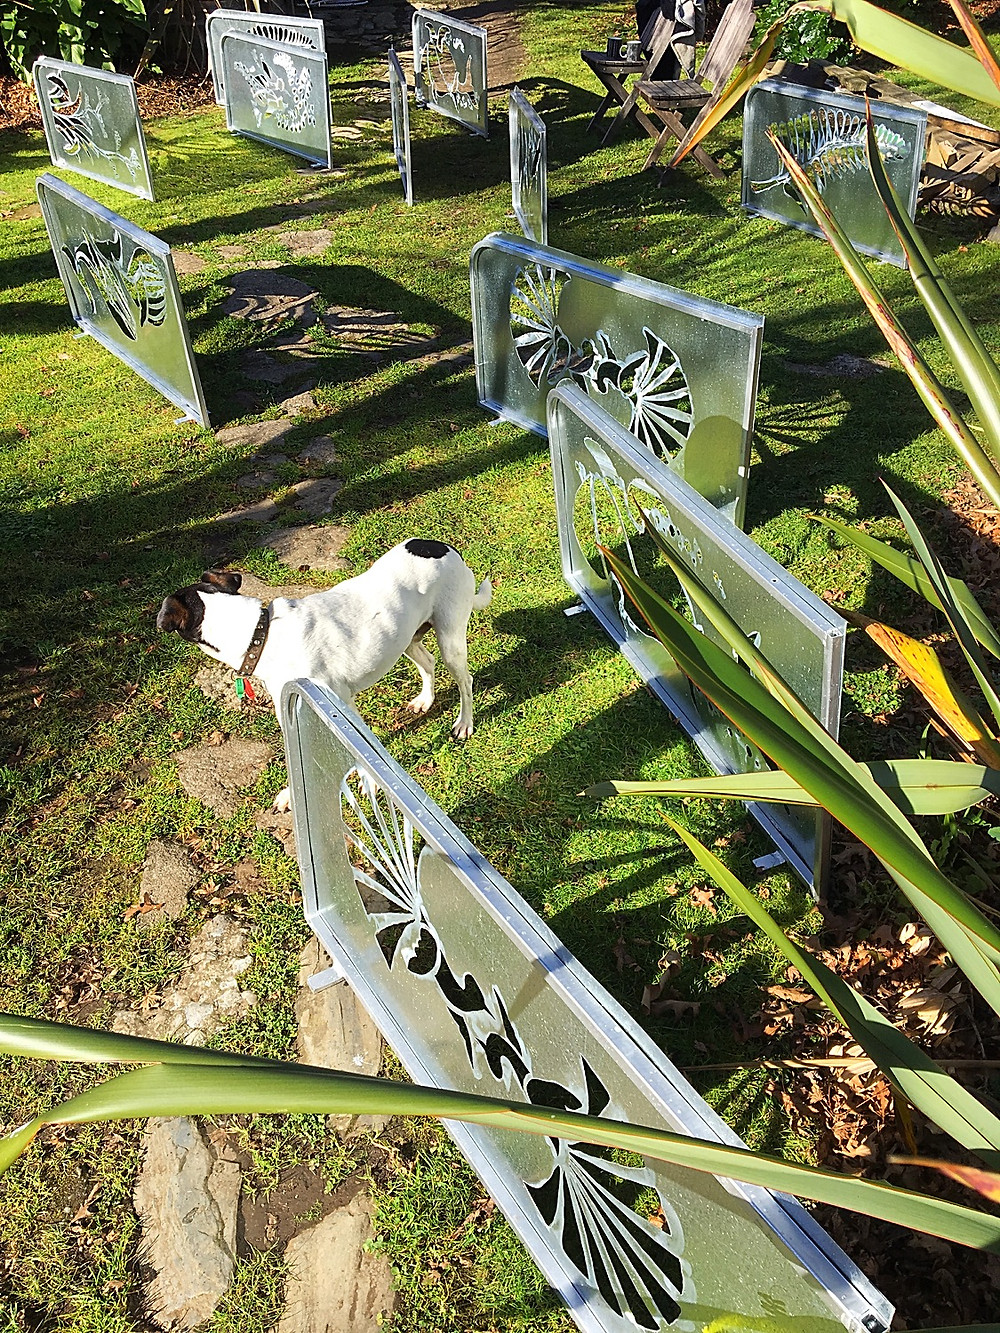 unpainted banners with dog